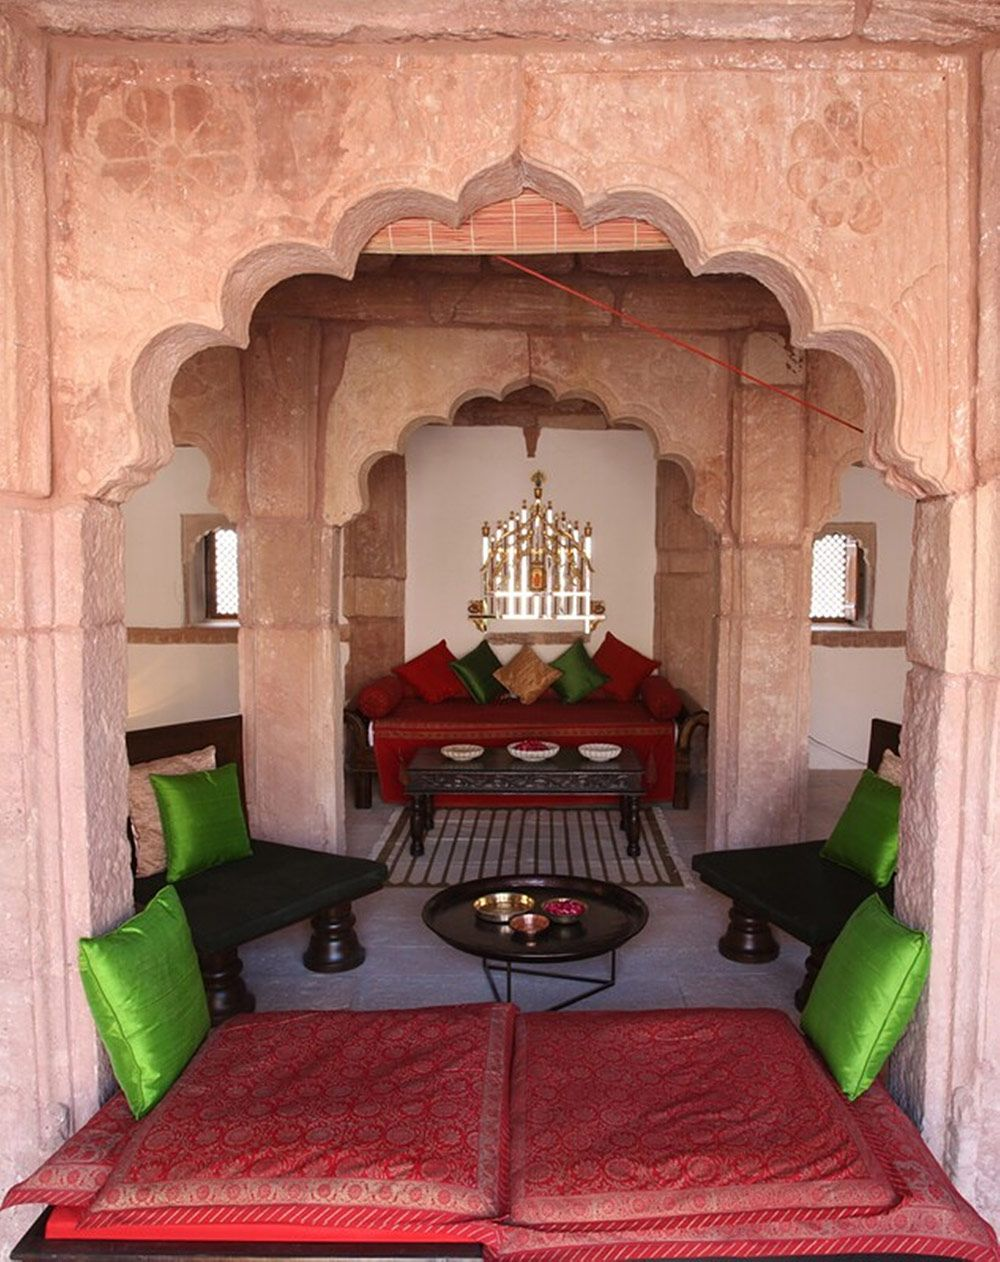 Ranvas in Nagaur, Rajasthan: 18th-century havelis tucked within the walls of Nagaur's magnificent fort.